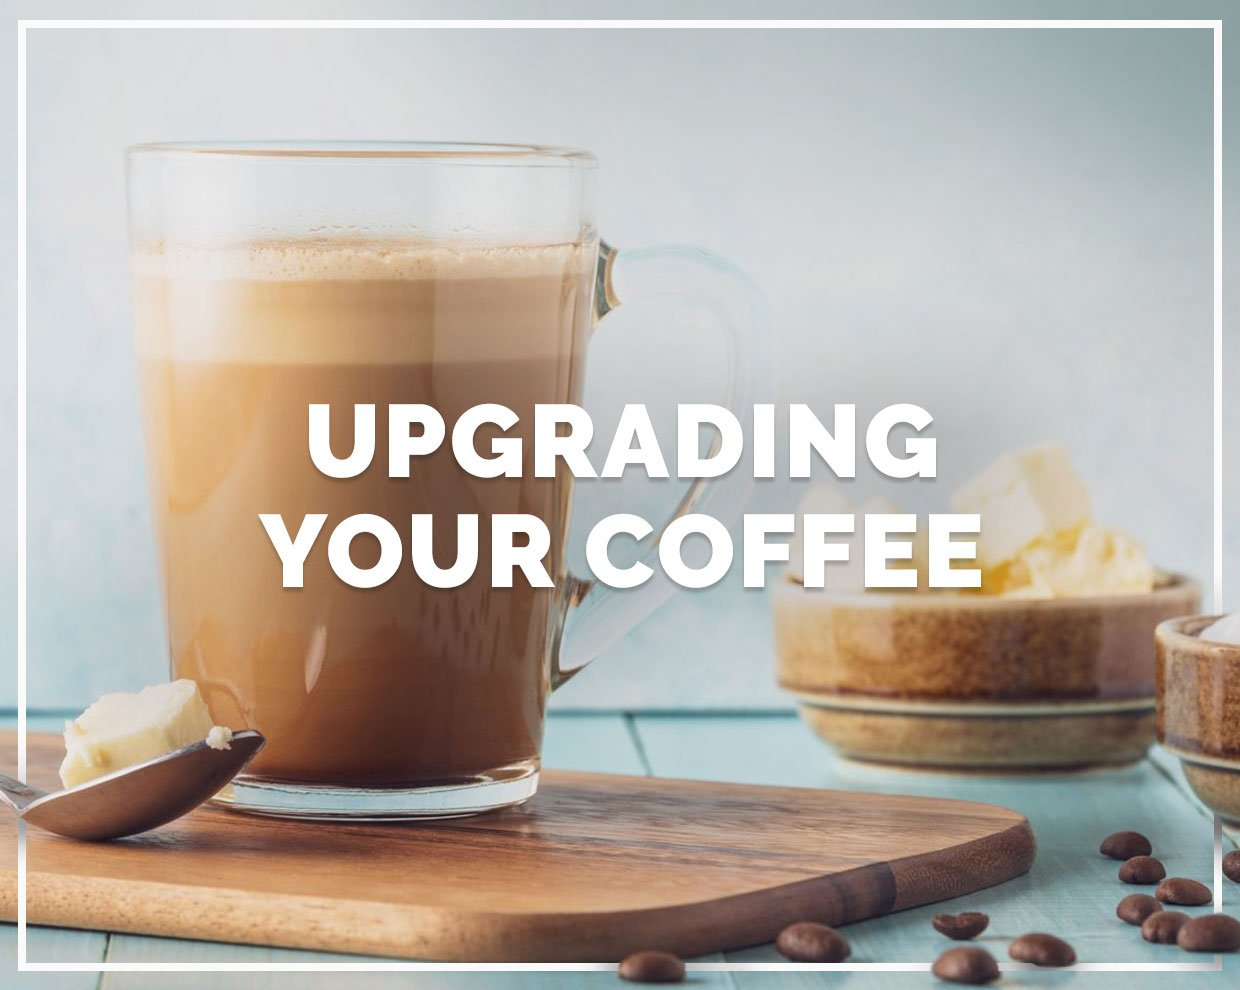 Upgrading your coffee